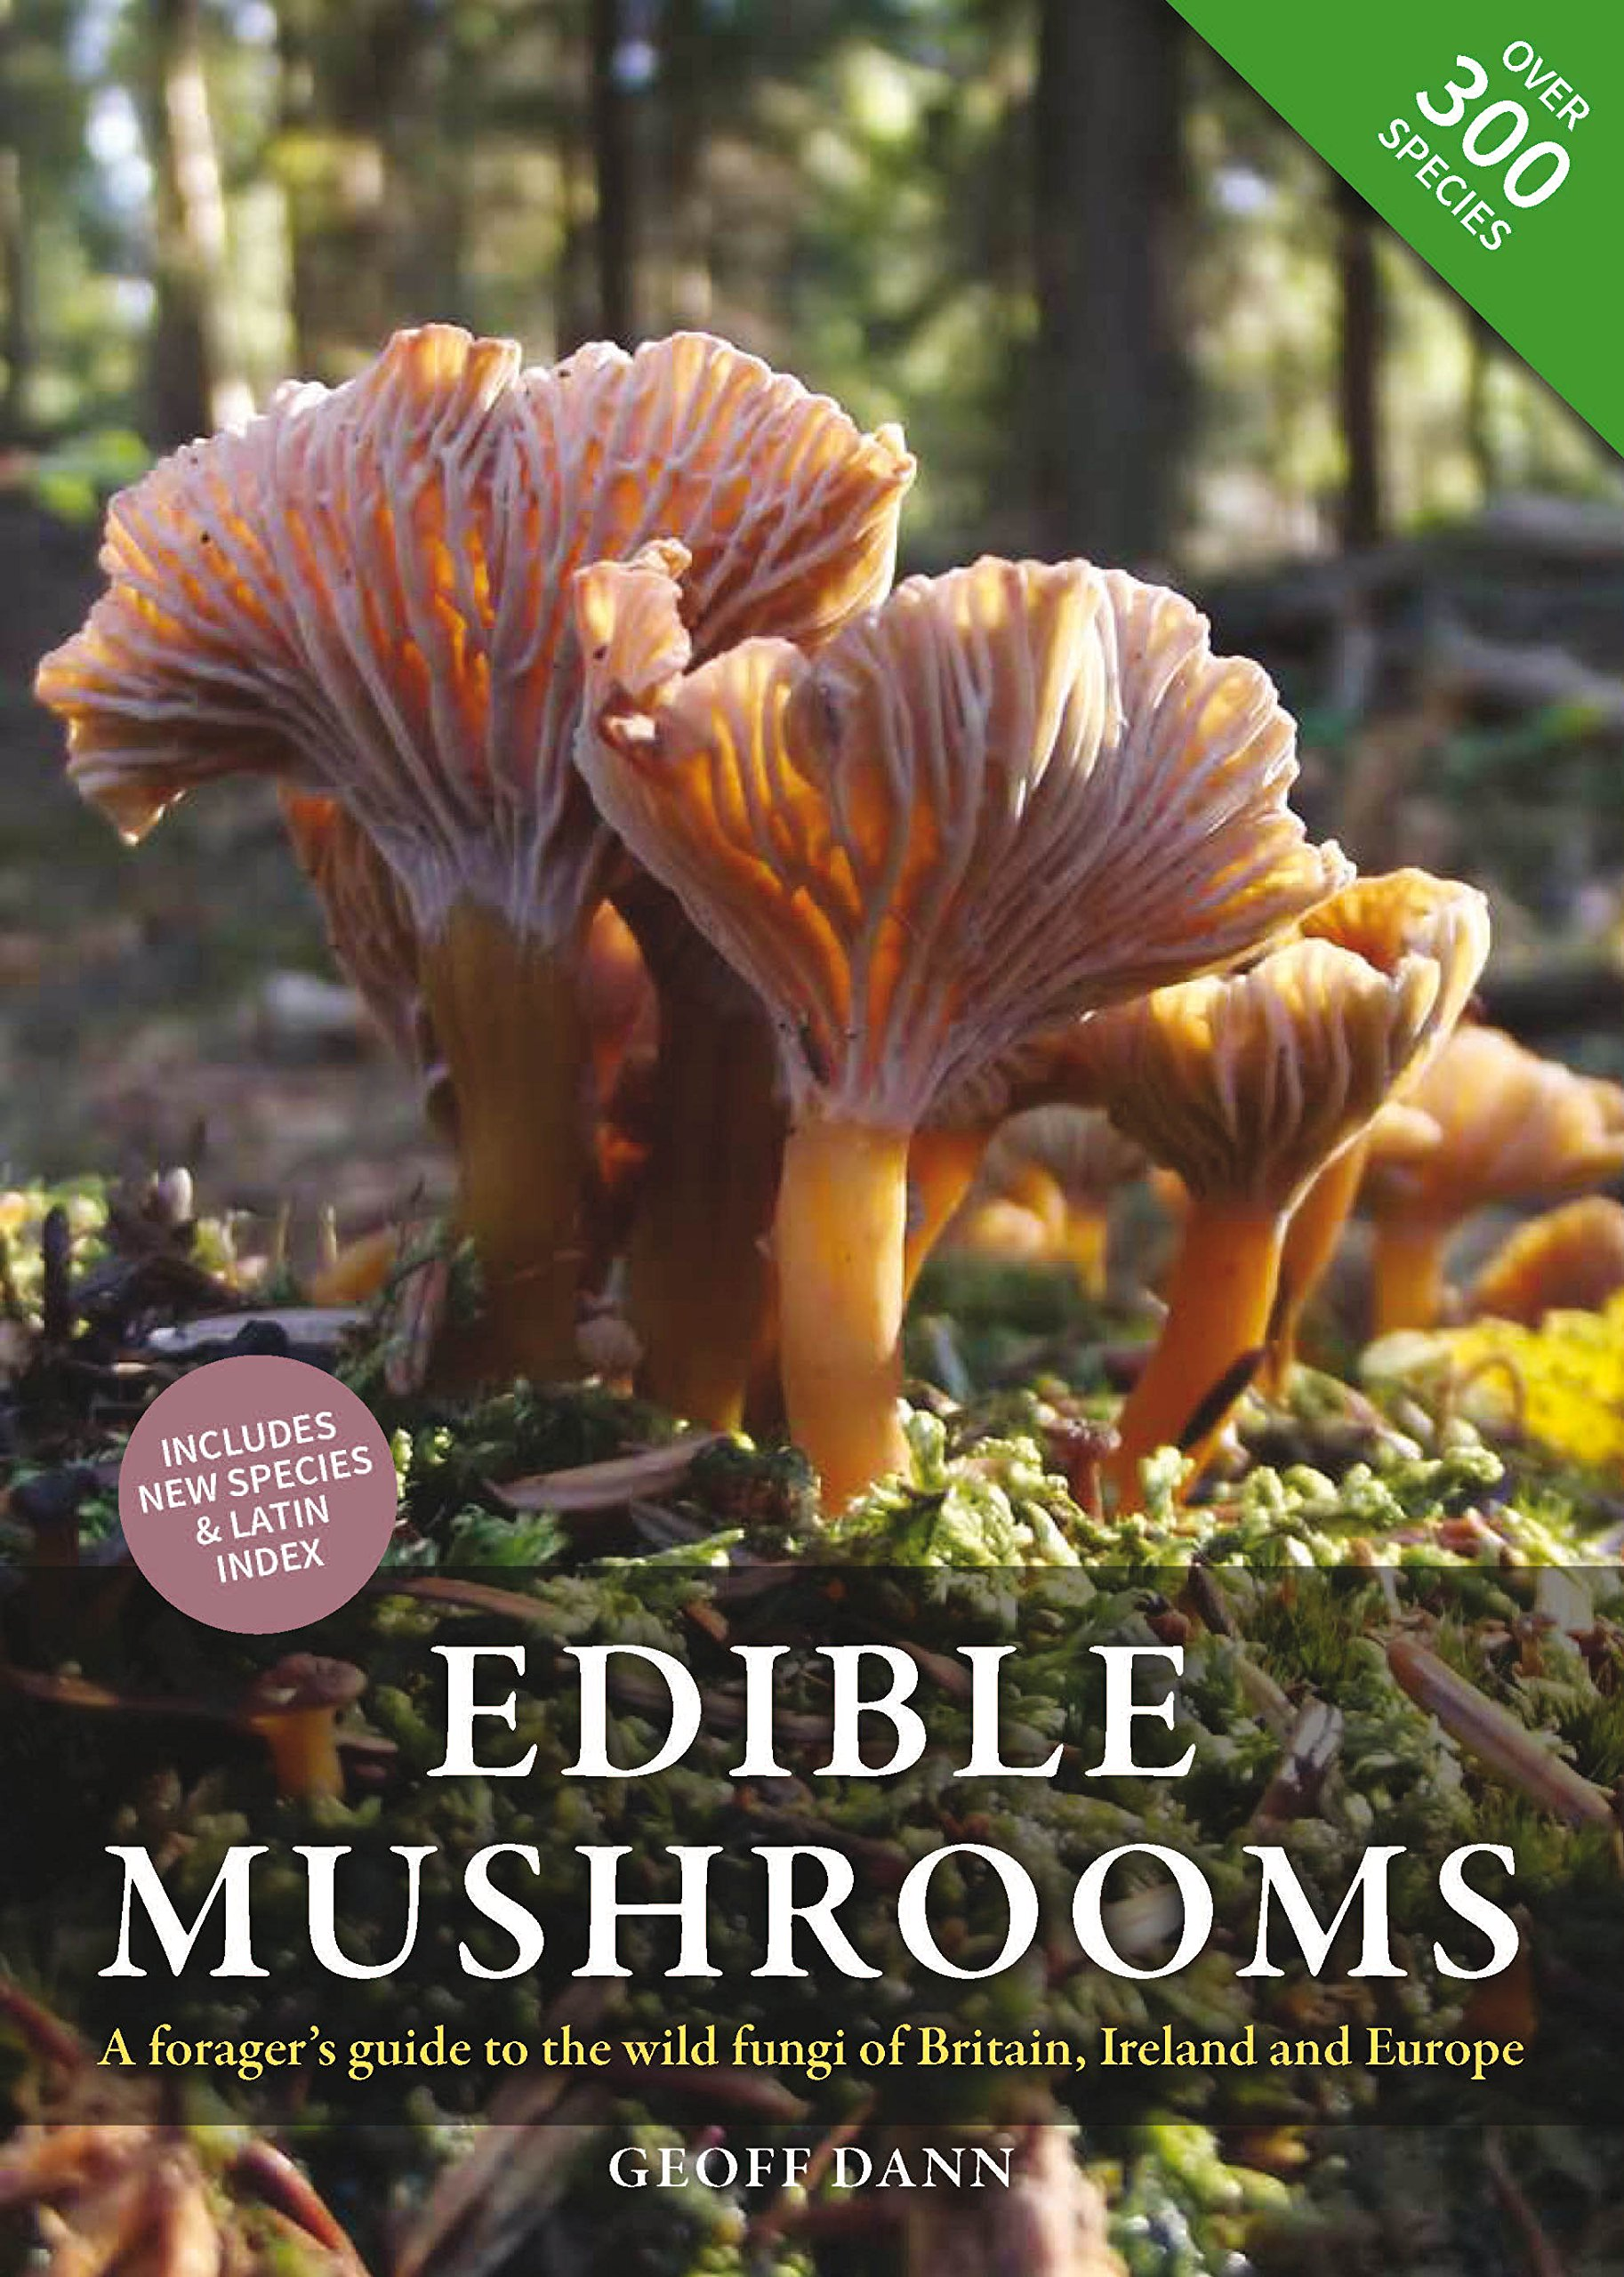 edible-mushrooms-a-forager-s-guide-to-the-wild-fungi-of-britain-ireland-and-europe